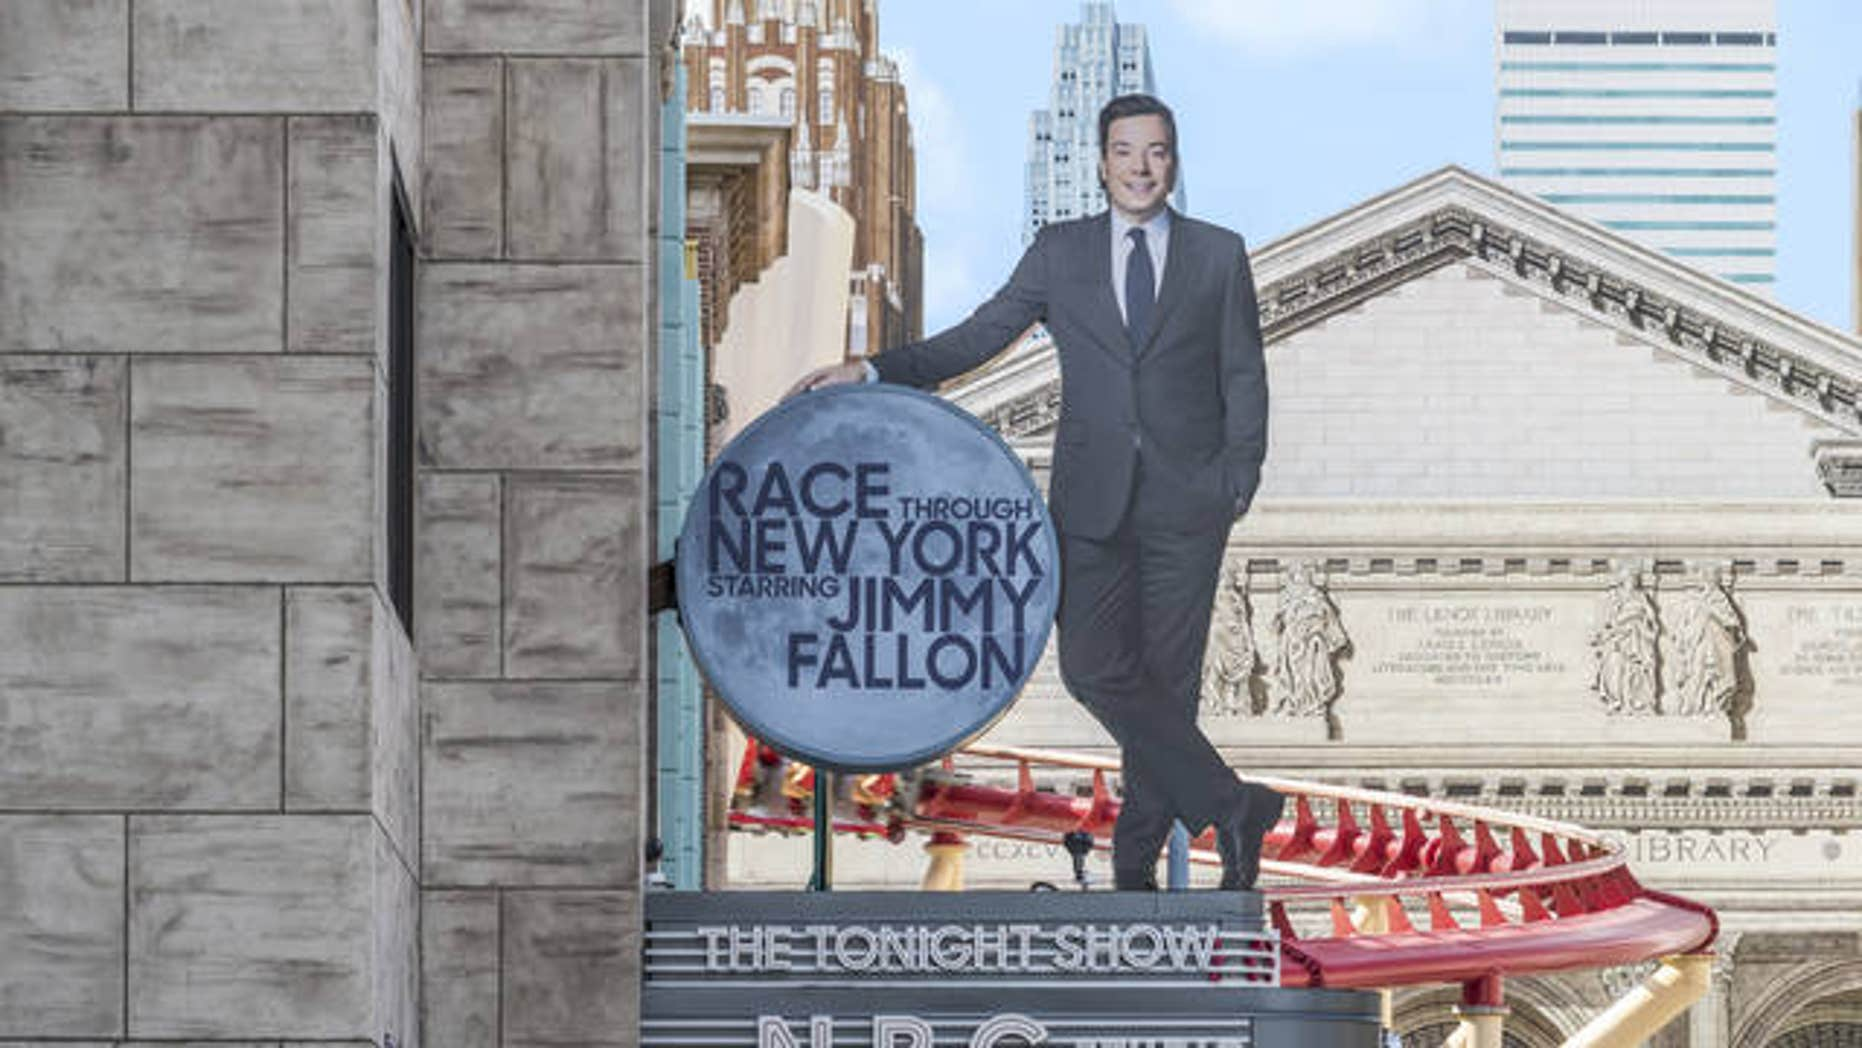 """""""Race Through New York Starring Jimmy Fallon"""" ride in Orlando, Fla. Universal is leading the theme-park charge into """"virtual lines"""" that give visitors options for exploring a park or watching live entertainment instead of the tedium of looking at someone's back as you inch forward step by step to the thrill ride."""